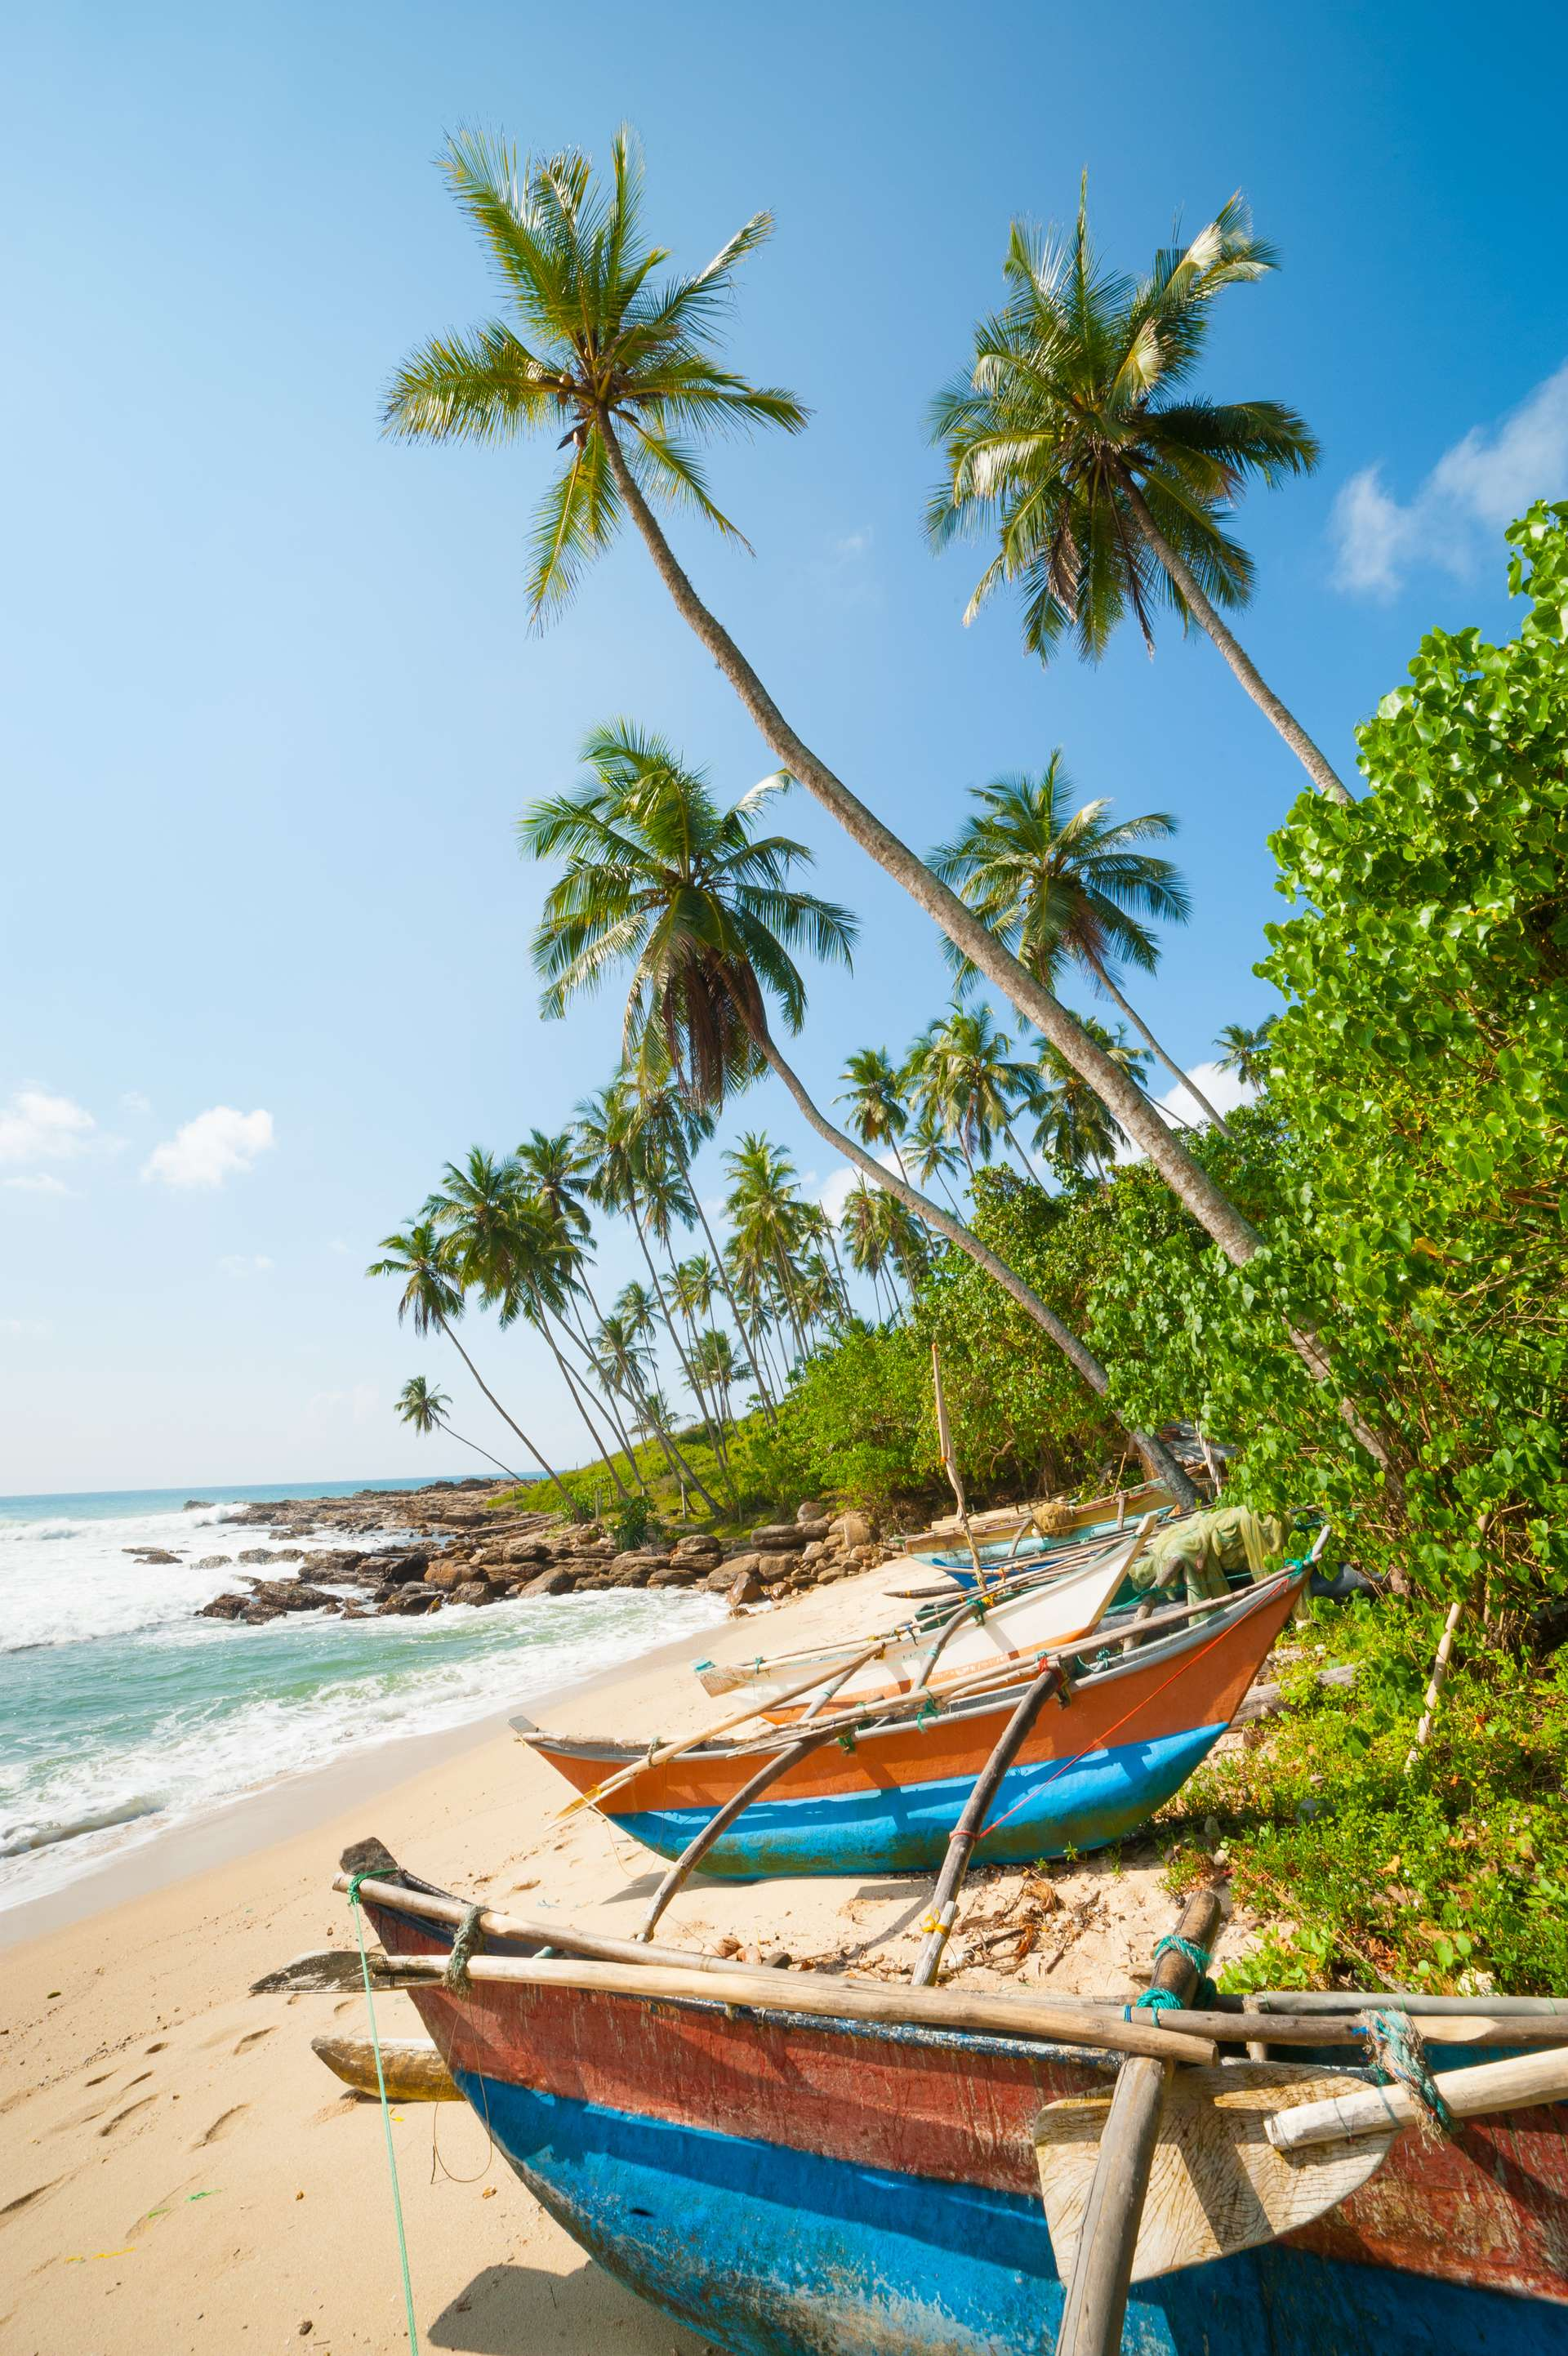 Sri Lanka tropical beach with palms and fishing boats